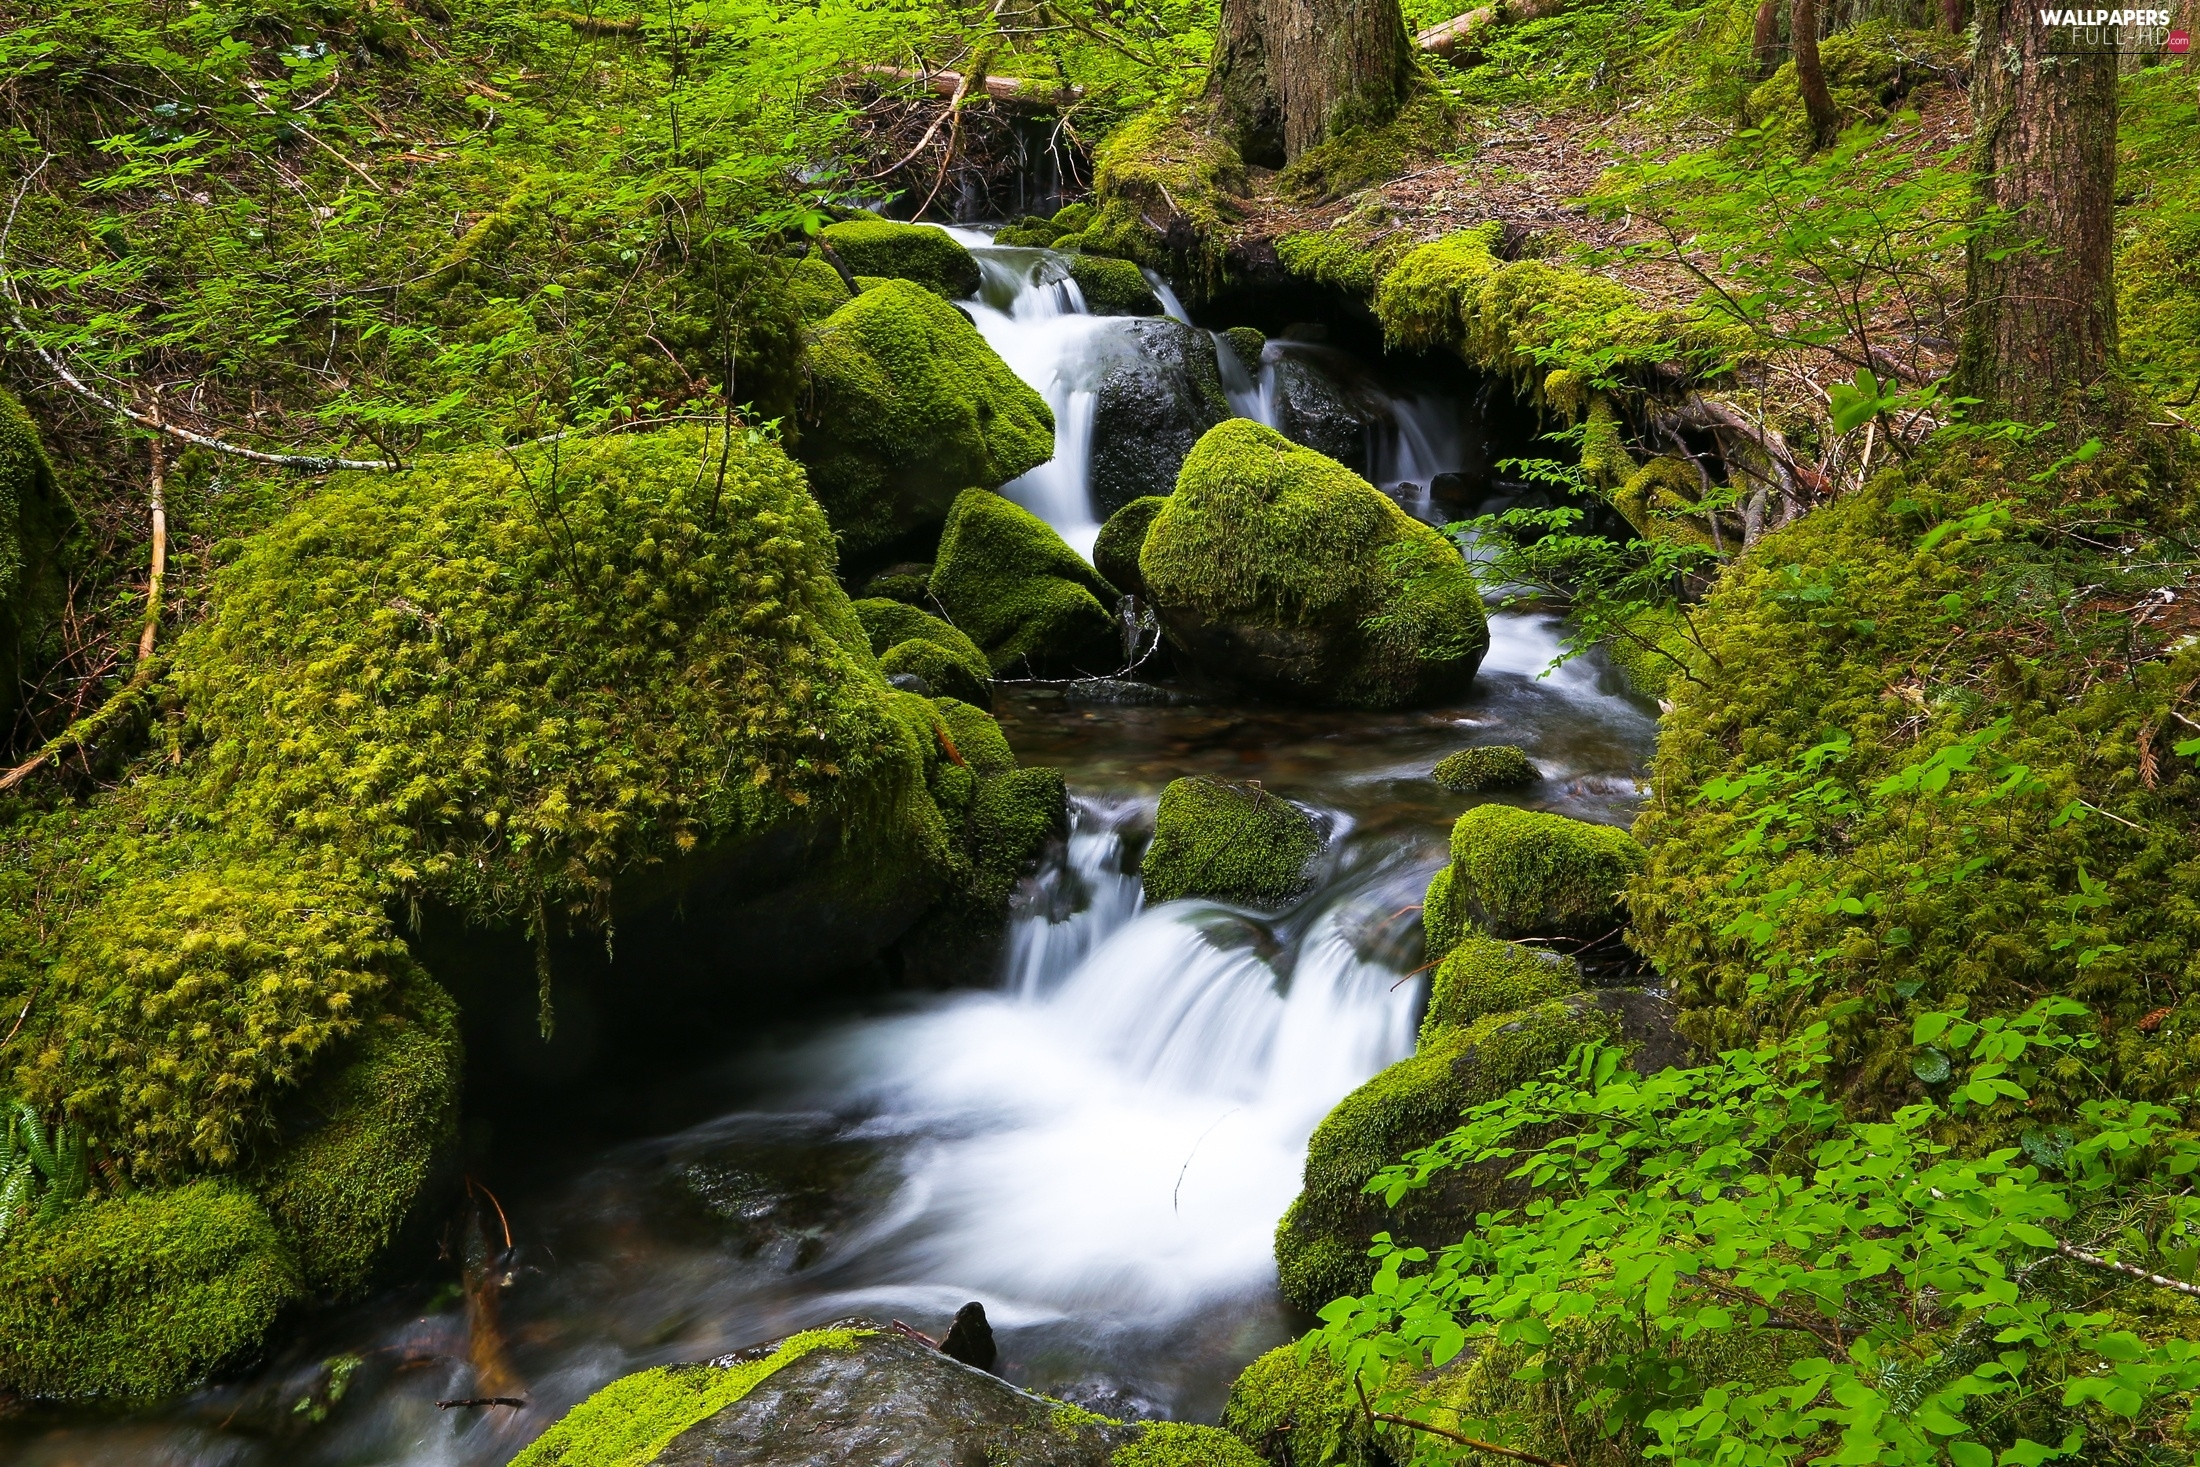 Moss, forest, Stones, River, waterfall, stream